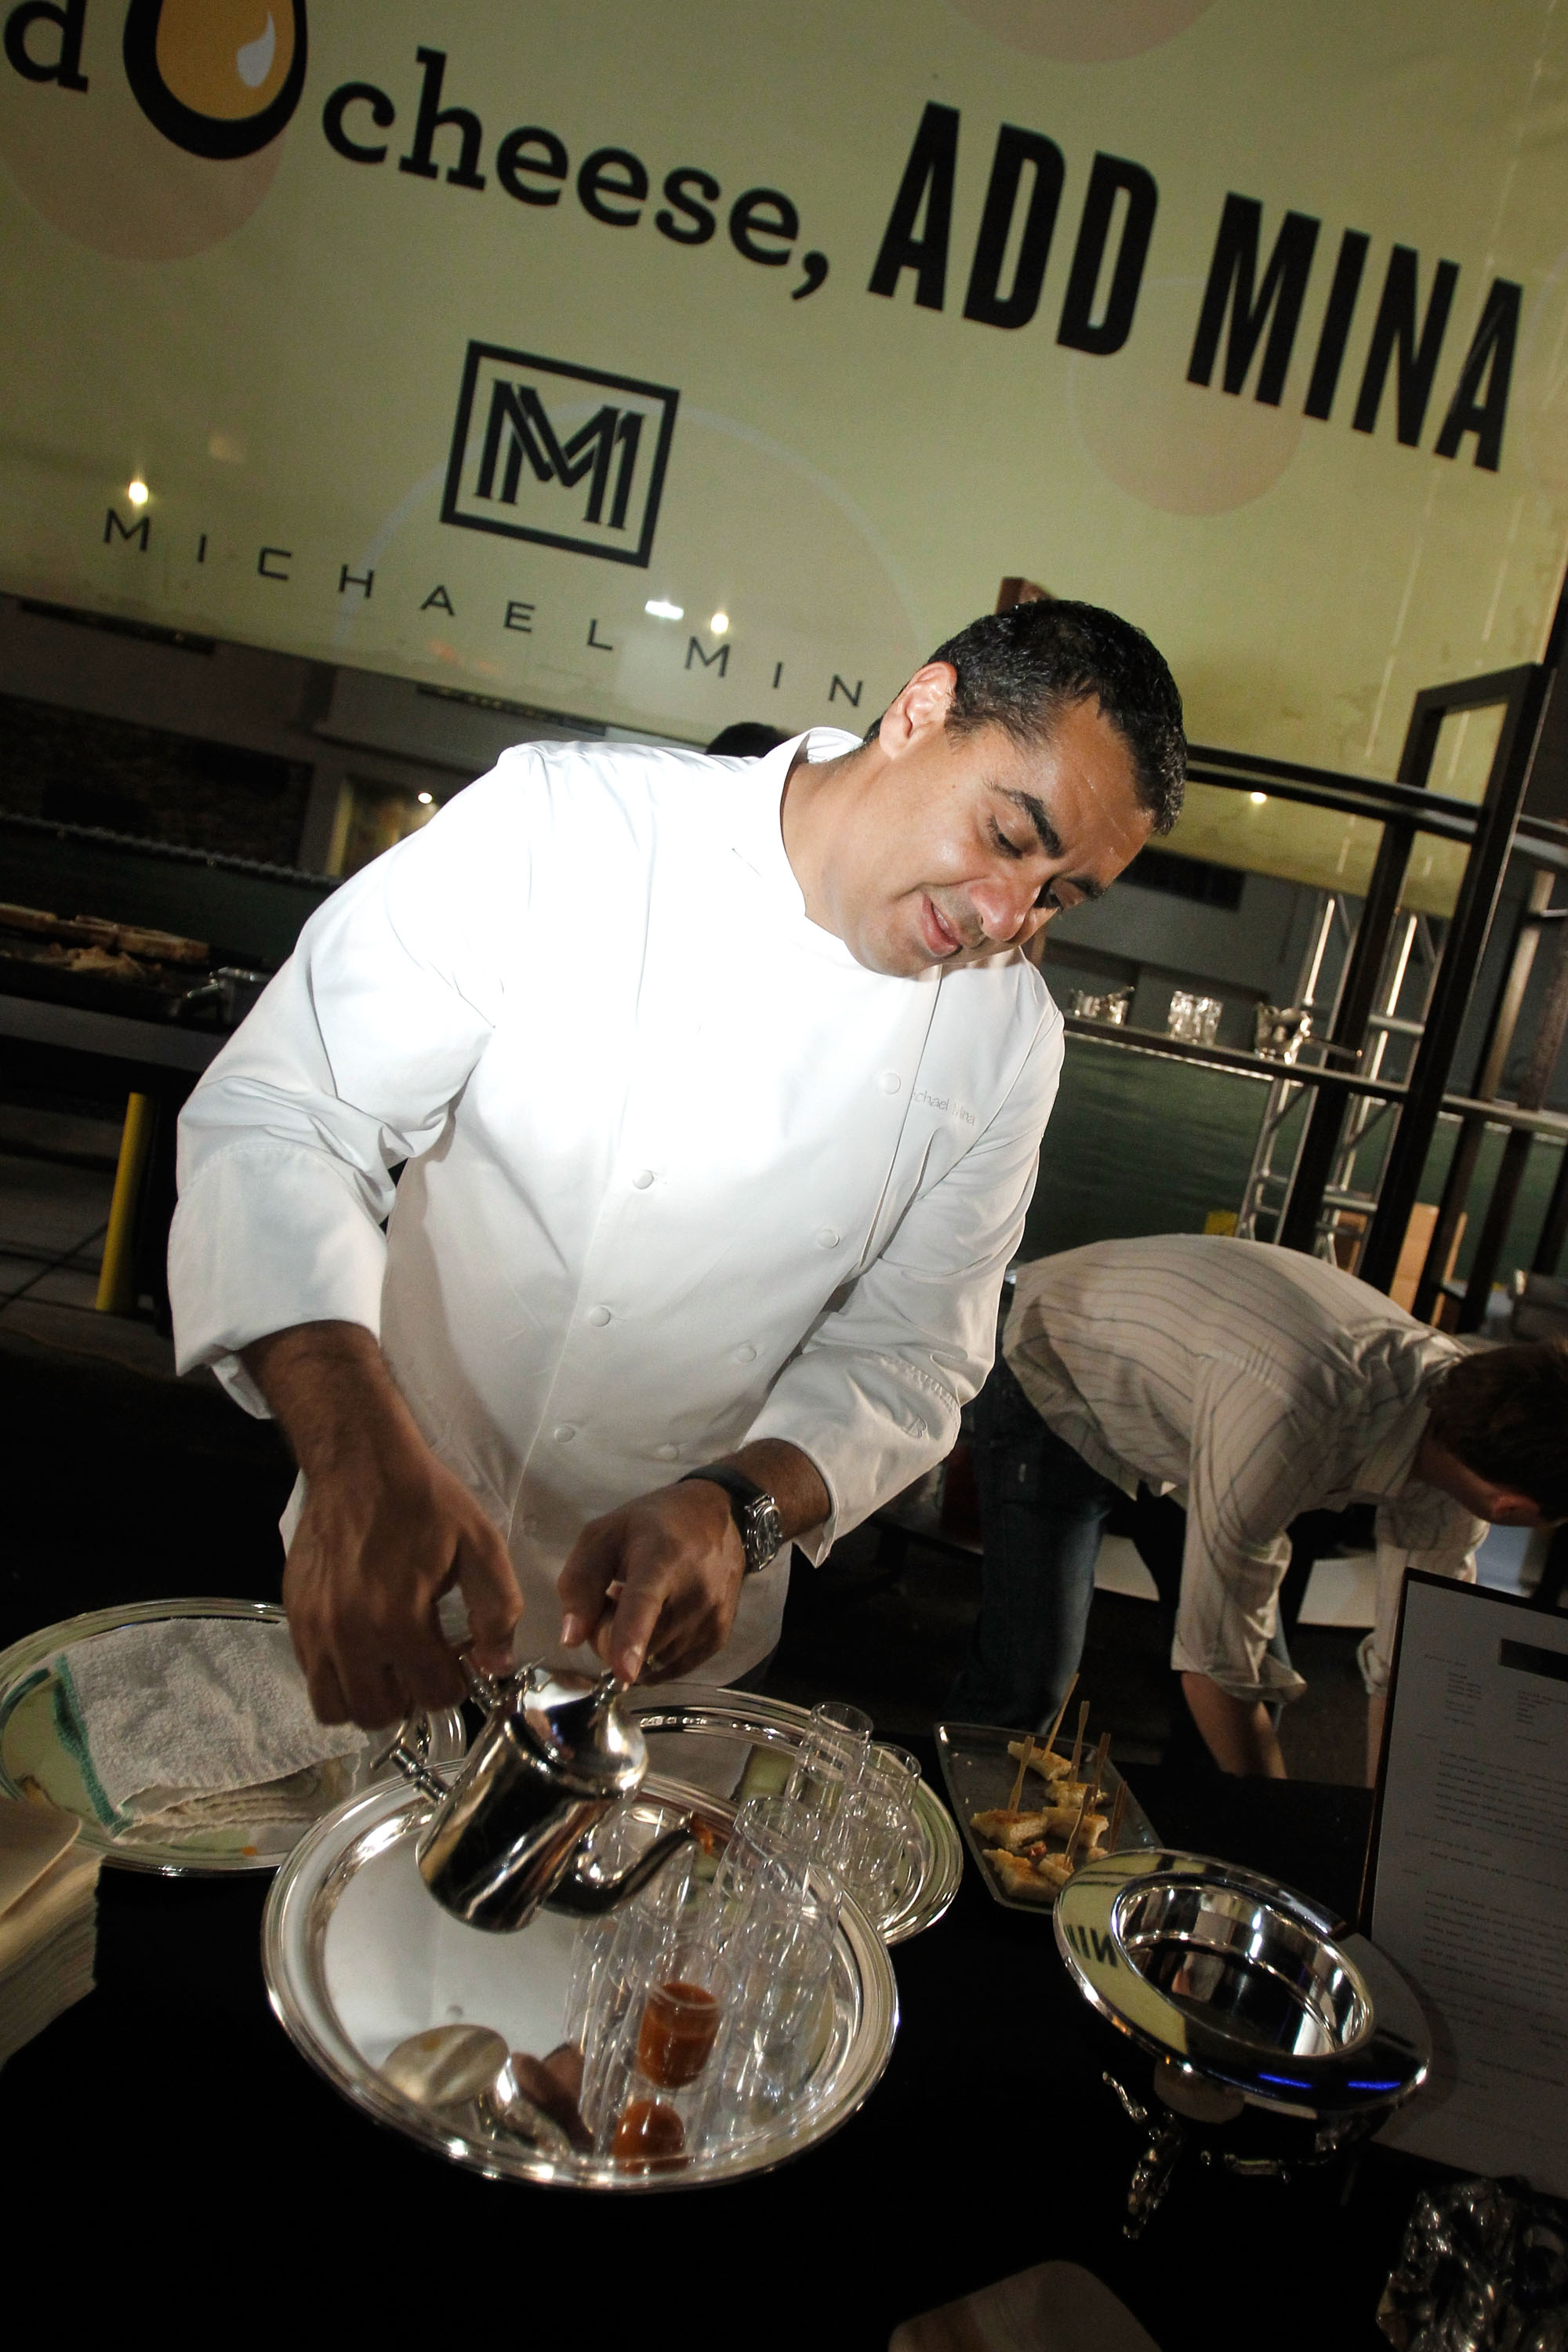 Michael Mina serving guests at Follow That Food Truck at Bellagio for Vegas Uncork'd (photo credit: Isaac Brekken)